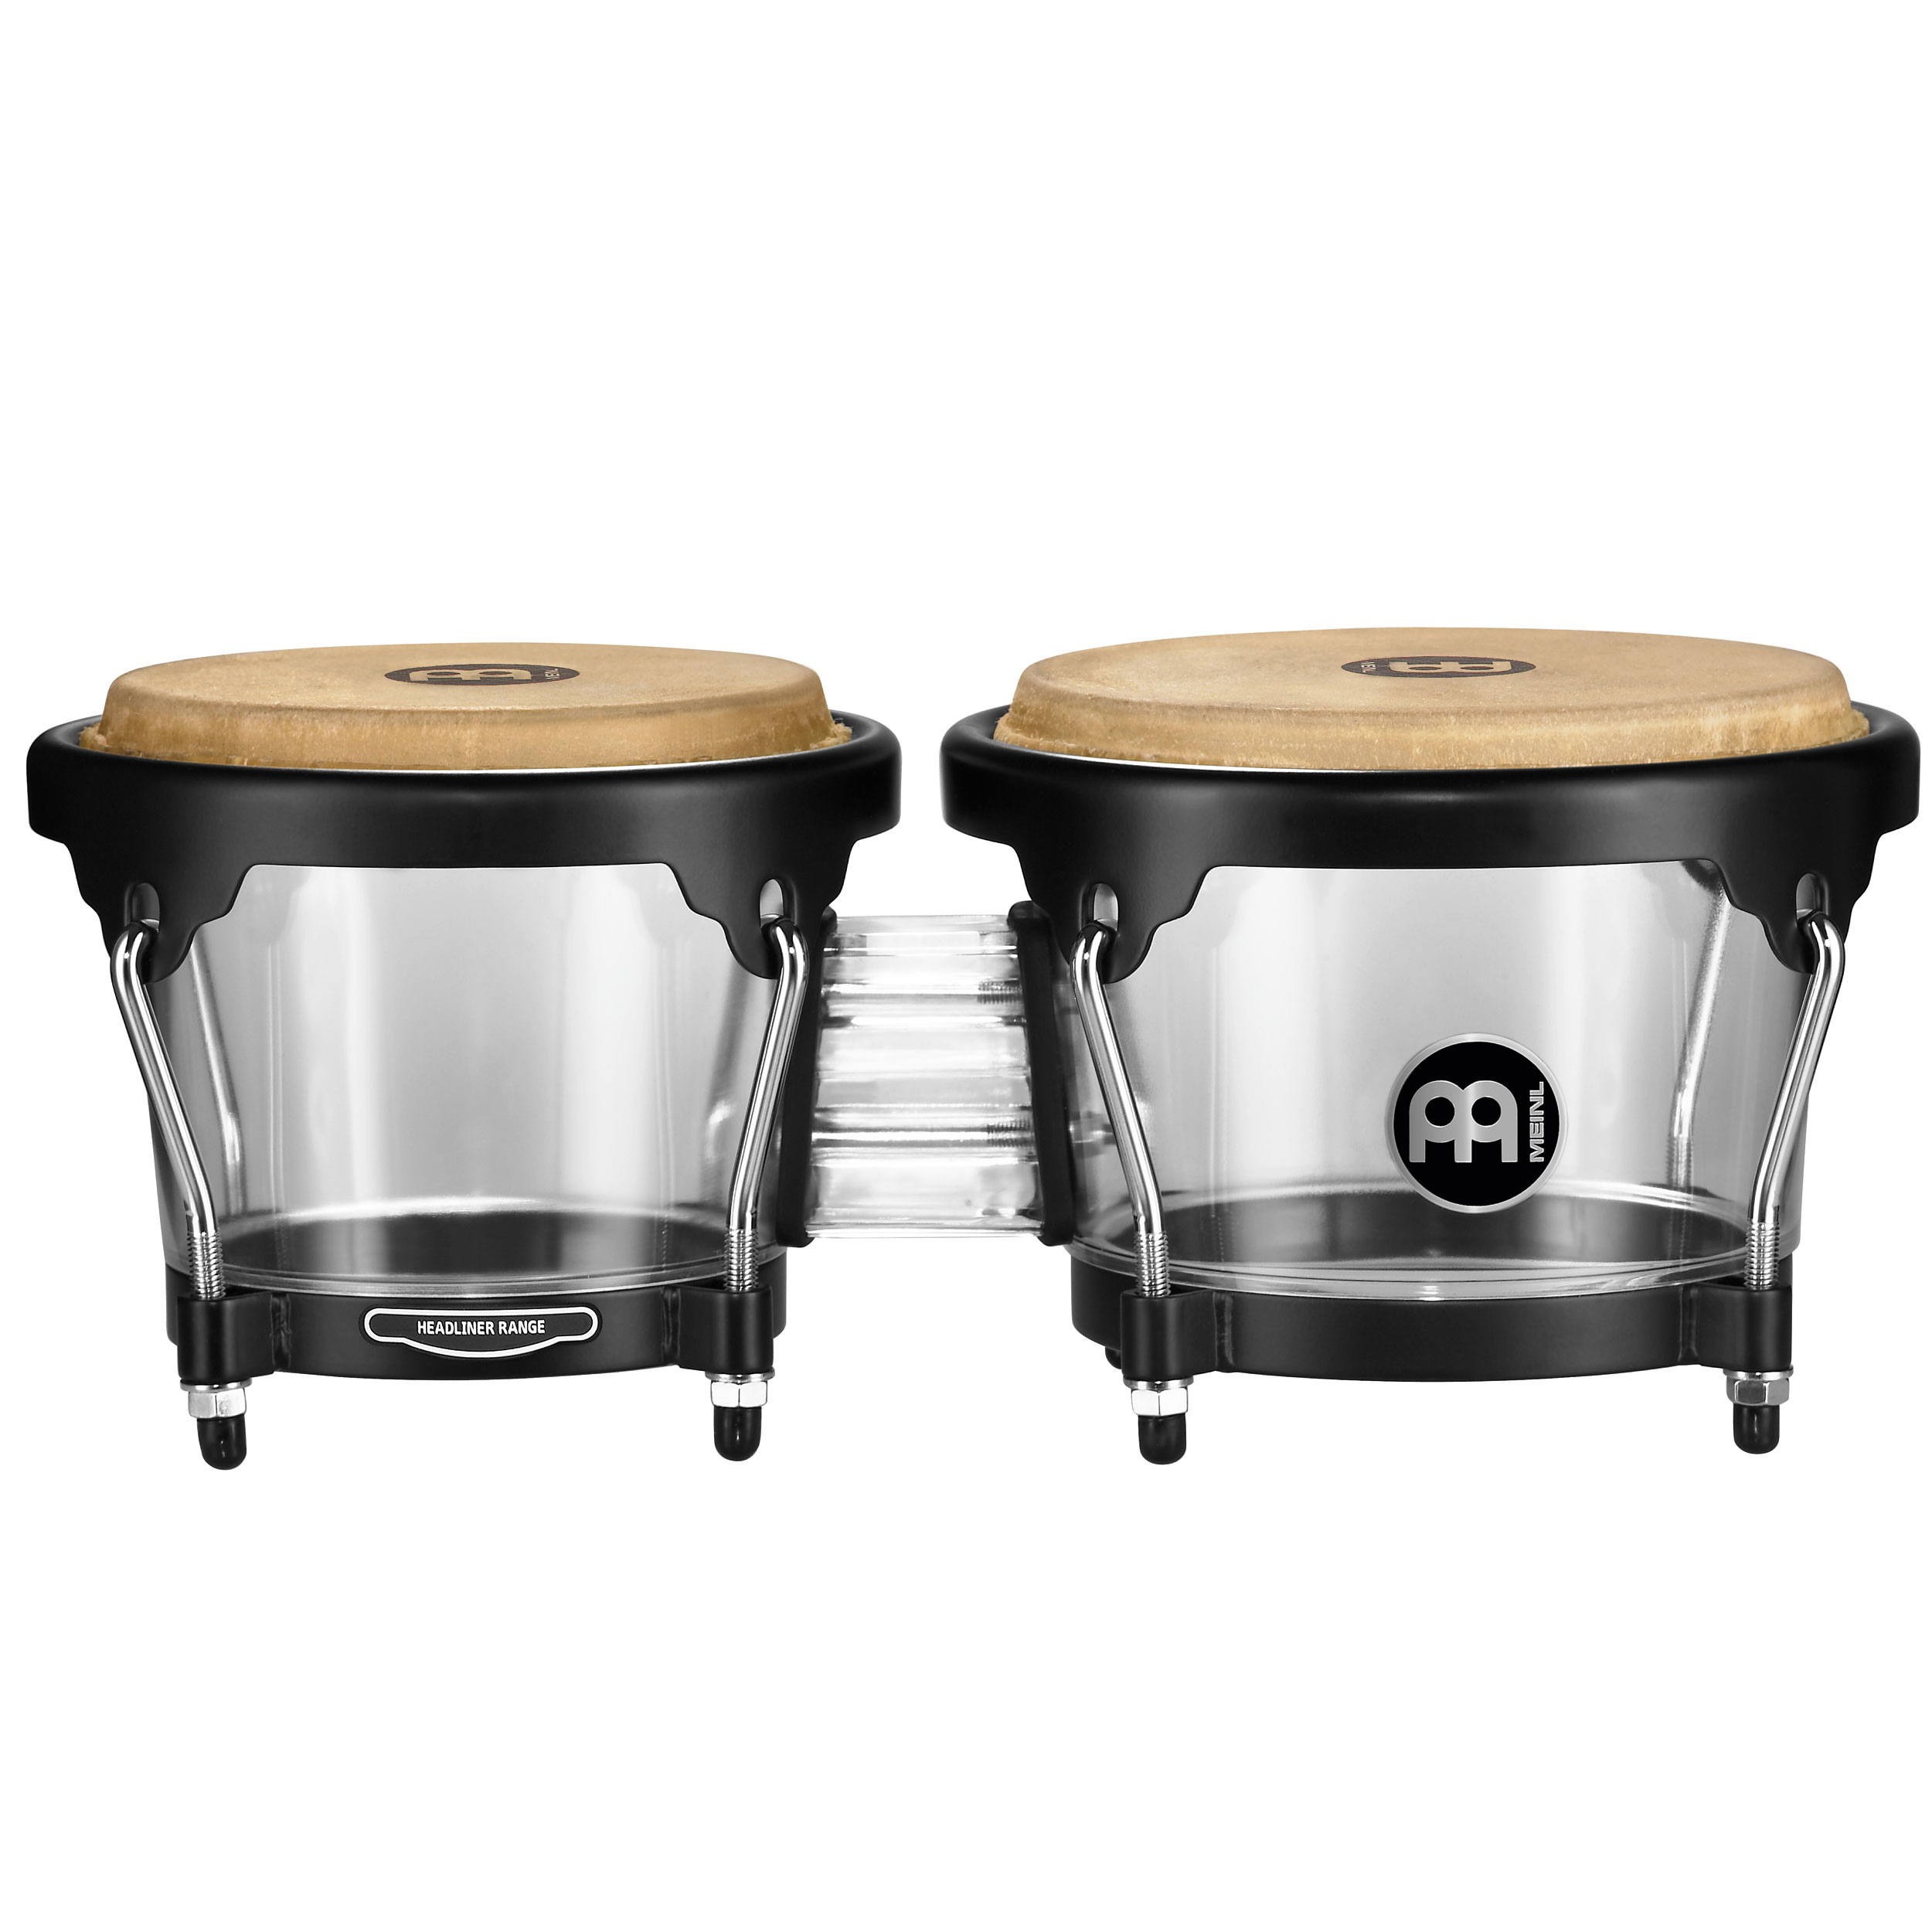 Meinl Headliner Series ABS Bongos